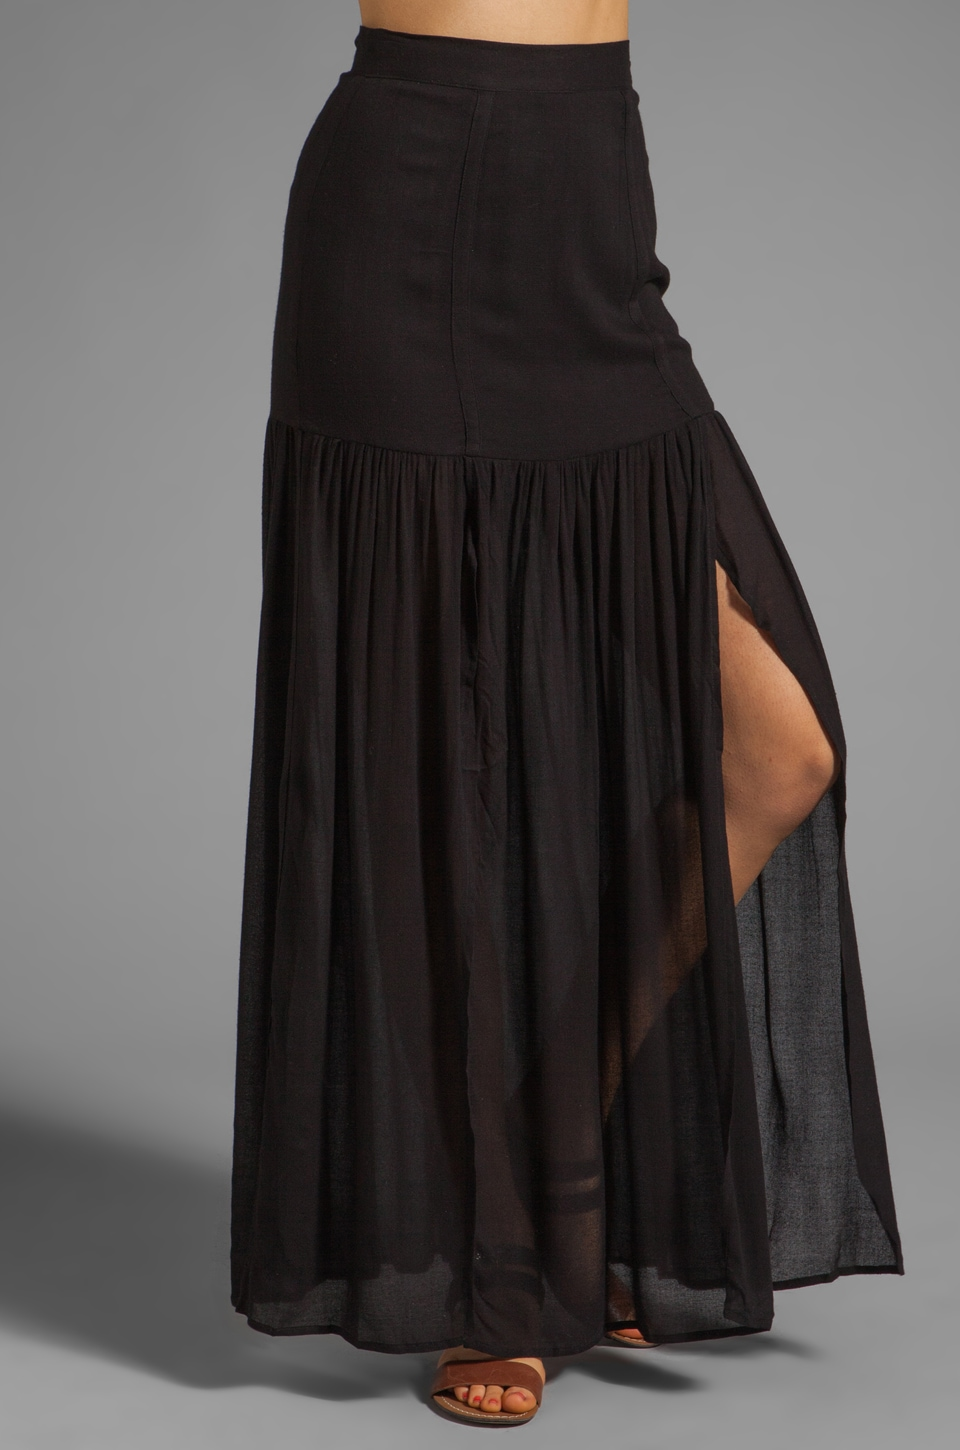 Nation LTD Tilary Maxi Skirt in Black